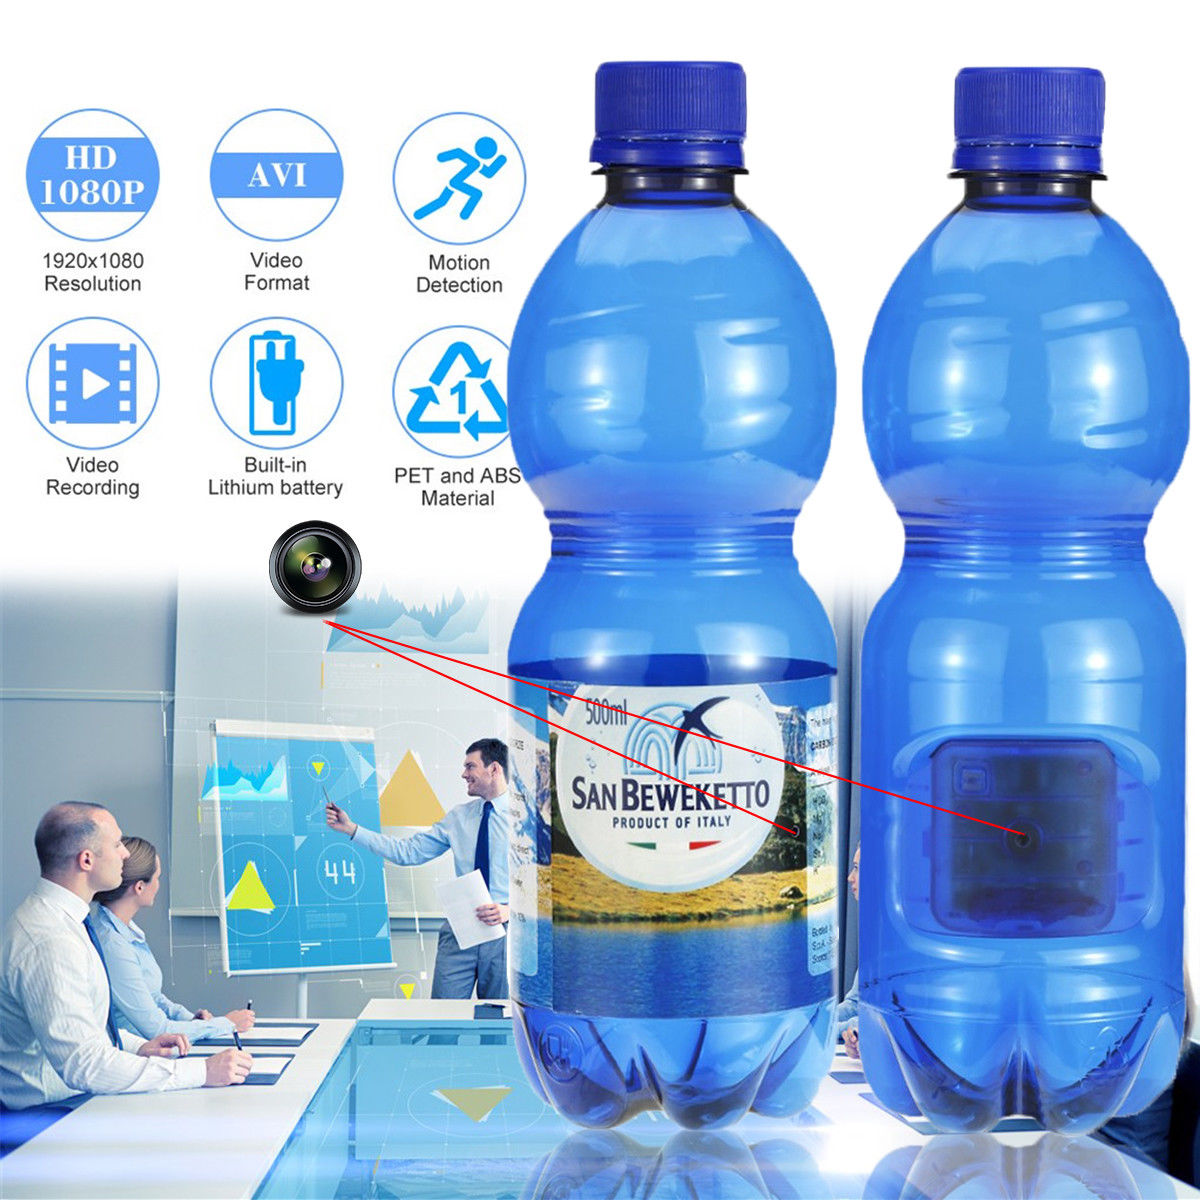 Spy Camera In Original Water Bottle Amazing Product